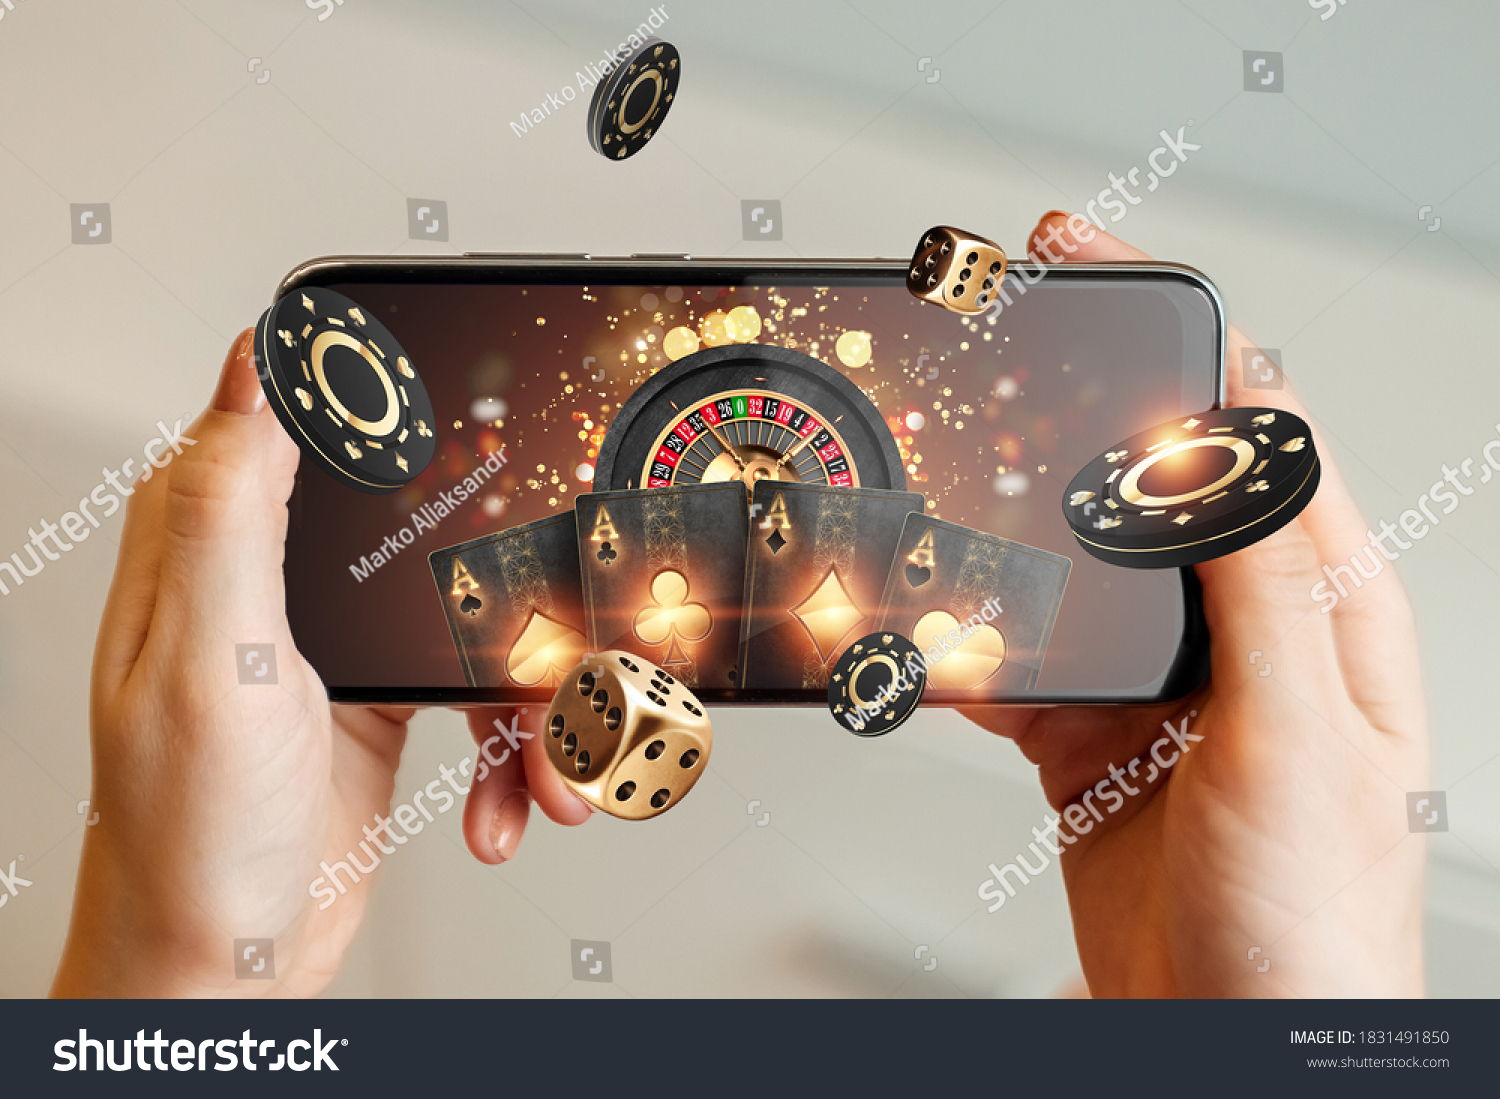 Creative background, online casino, in a man's hand a smartphone with playing cards, roulette and chips, black-gold background. Internet gambling concept. Copy space. #1831491850